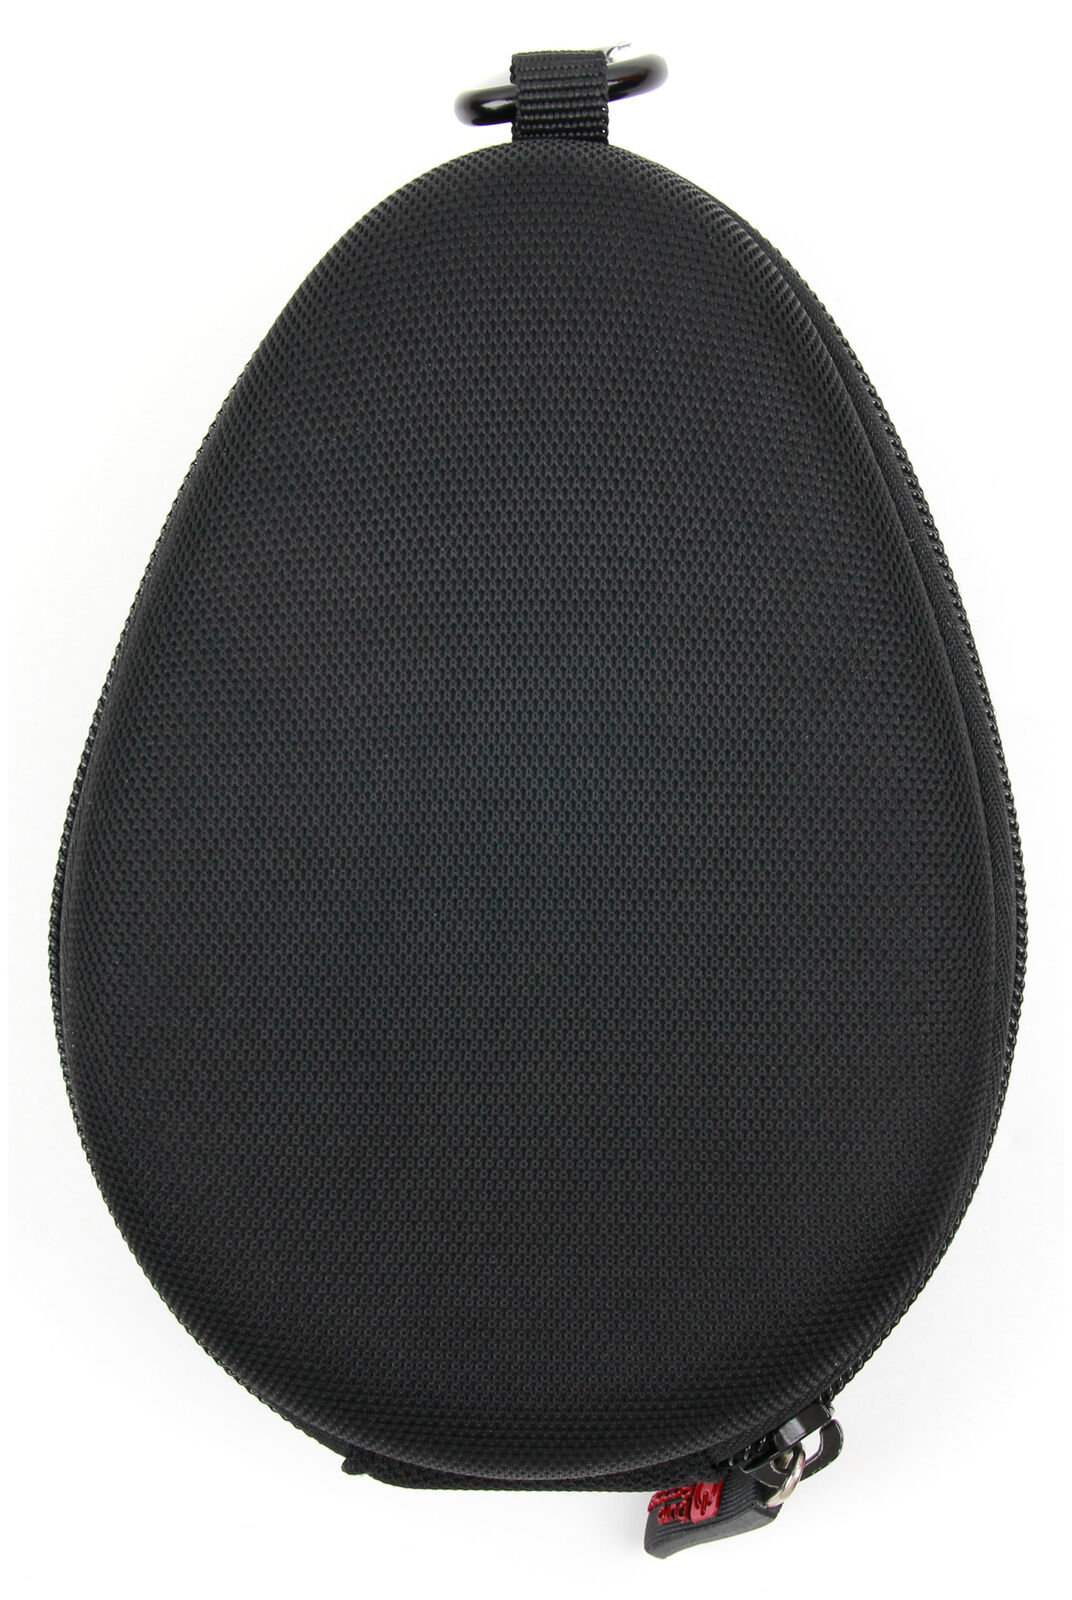 Hard EVA Headphone Case for Bose SoundSport Pulse - by DURAG